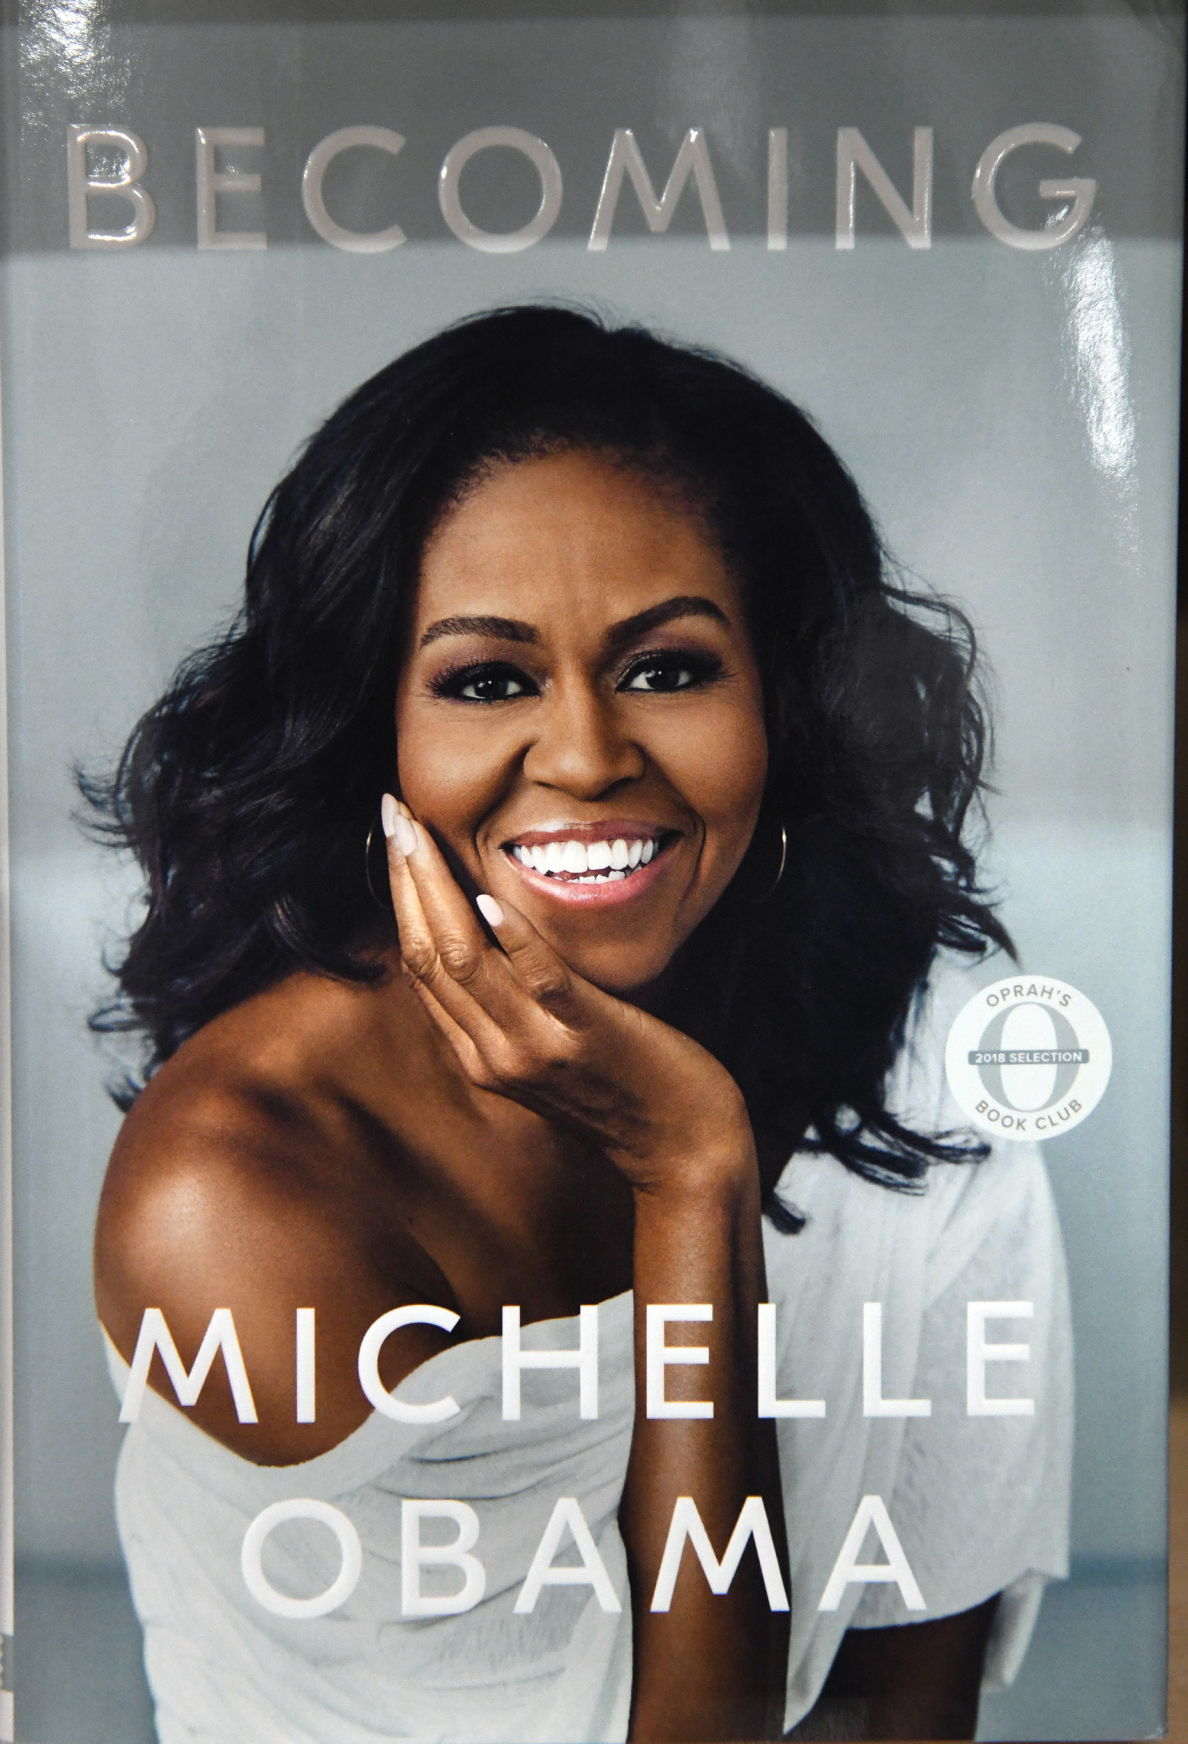 Michelle Obama's new book, Becoming, hits bookstores - DC